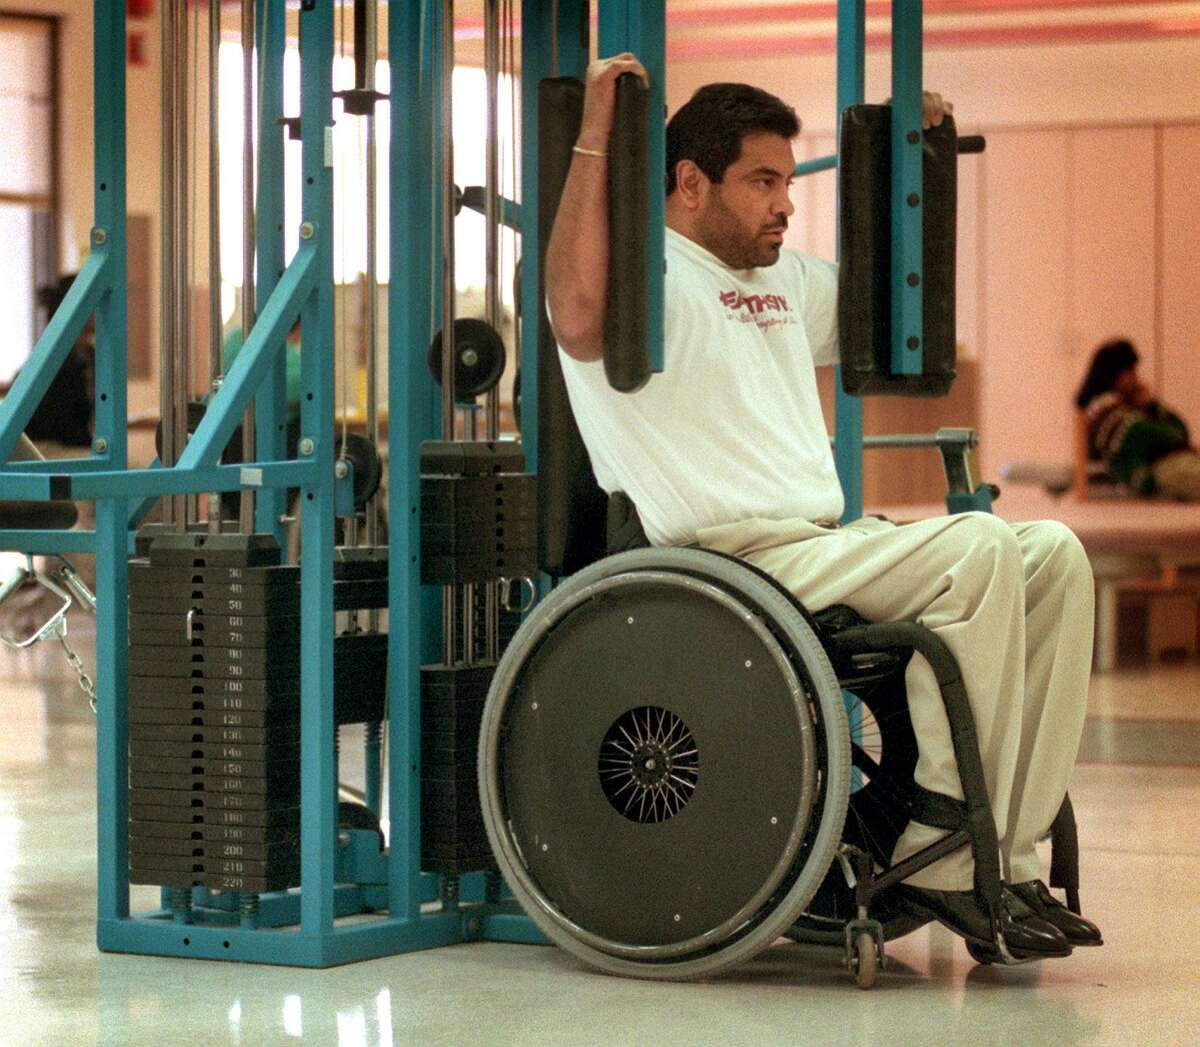 A patient uses a specially designed gym at HealthSouth Rehabilitation Institute of San Antonio in this 1999 photo.